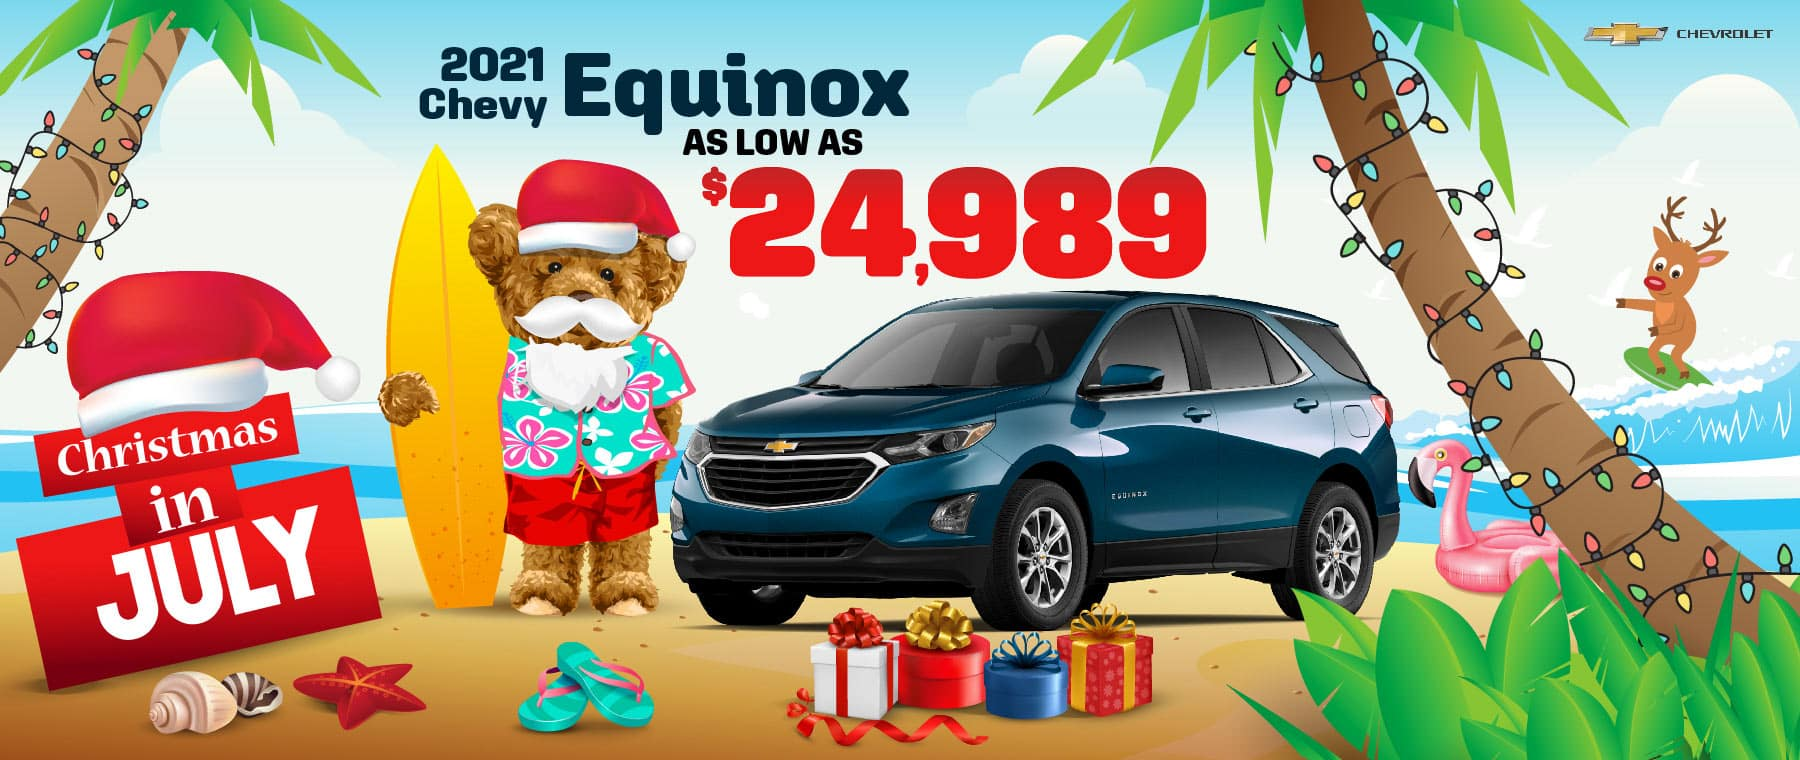 2021 Chevy Equinox - as low as $24,989